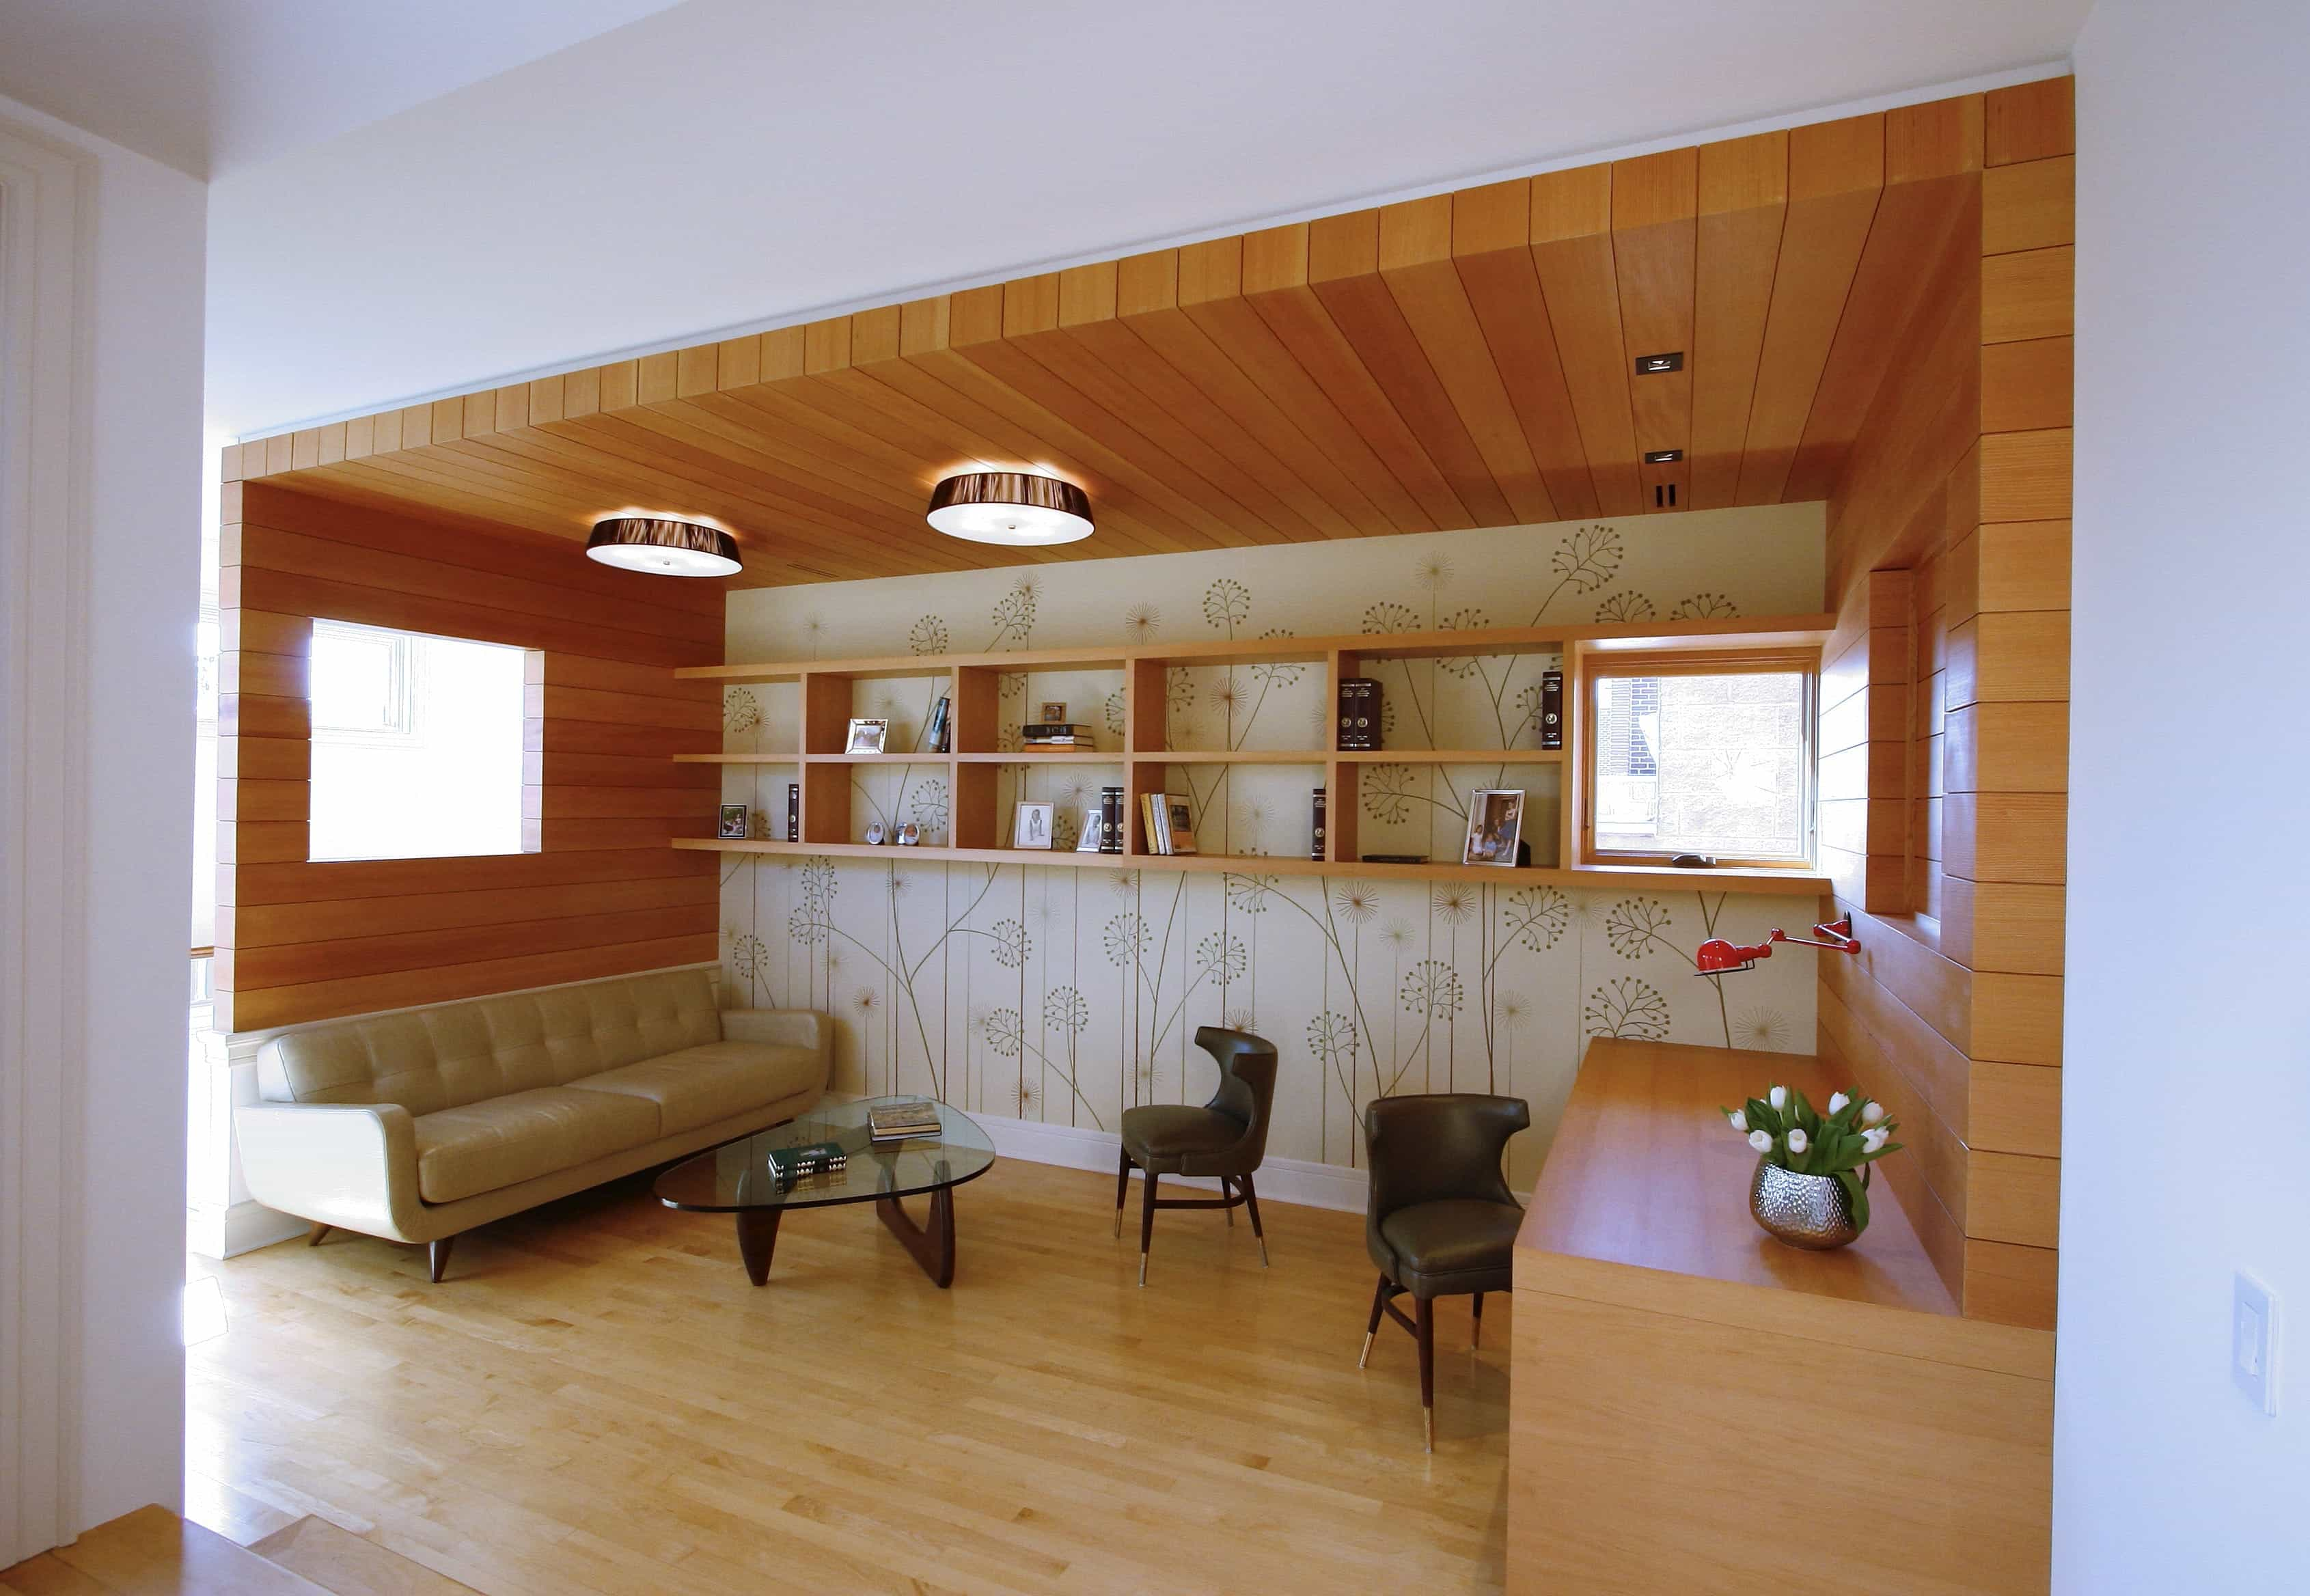 Cozy Home Office And Library With Contemporary Flat Wood Paneling Cabinets (Photo 3 of 10)